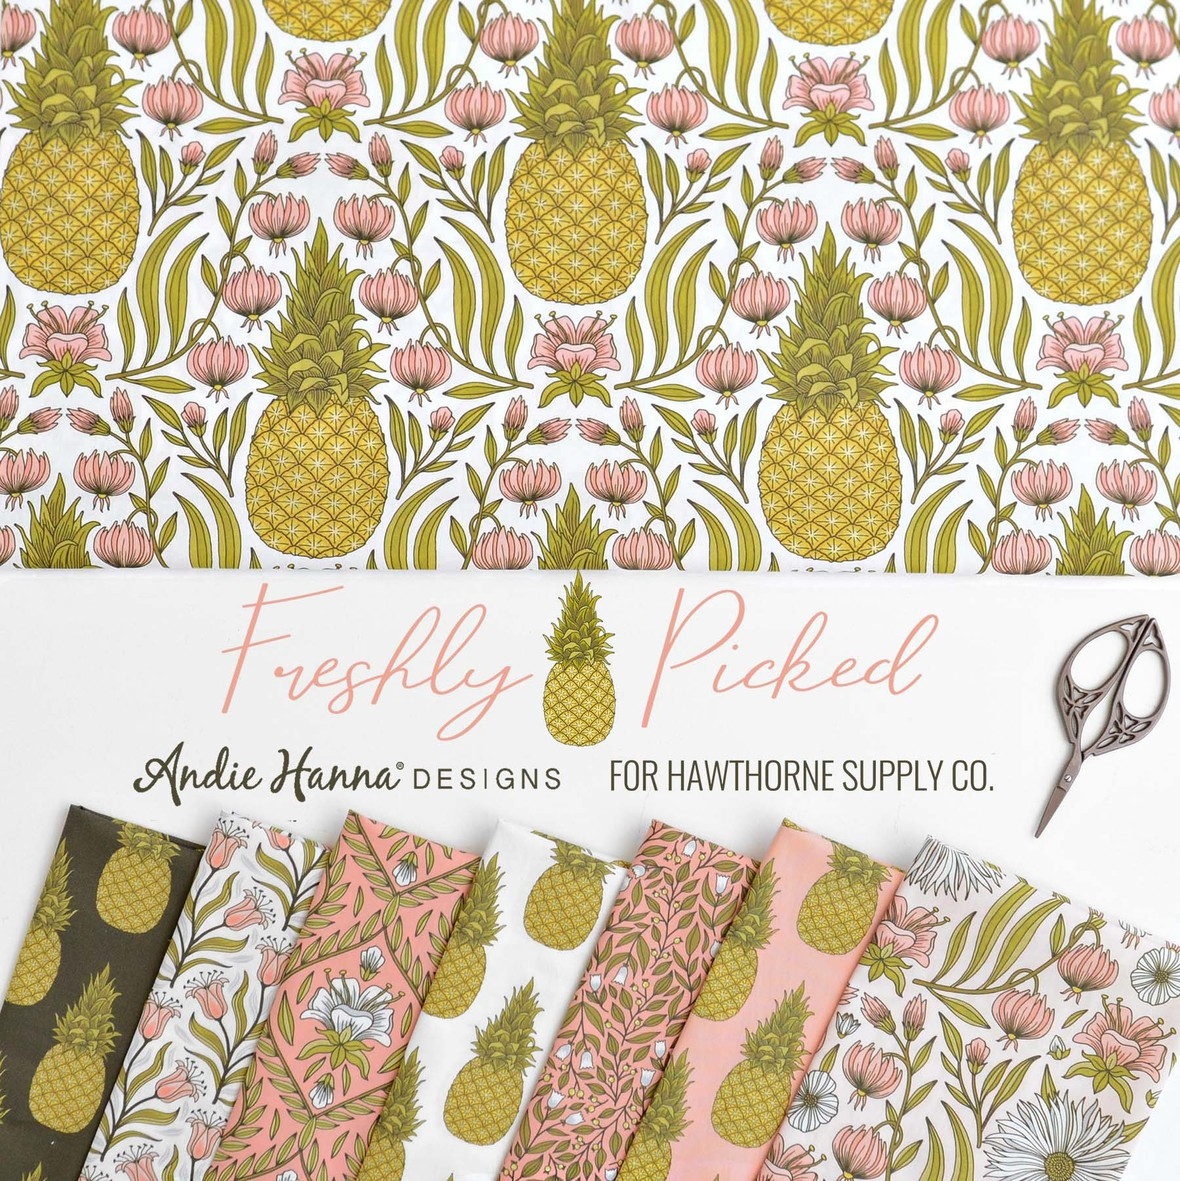 Freshly Picked Pineapple Fabric from Andie Hanna for Hawthorne Supply Co